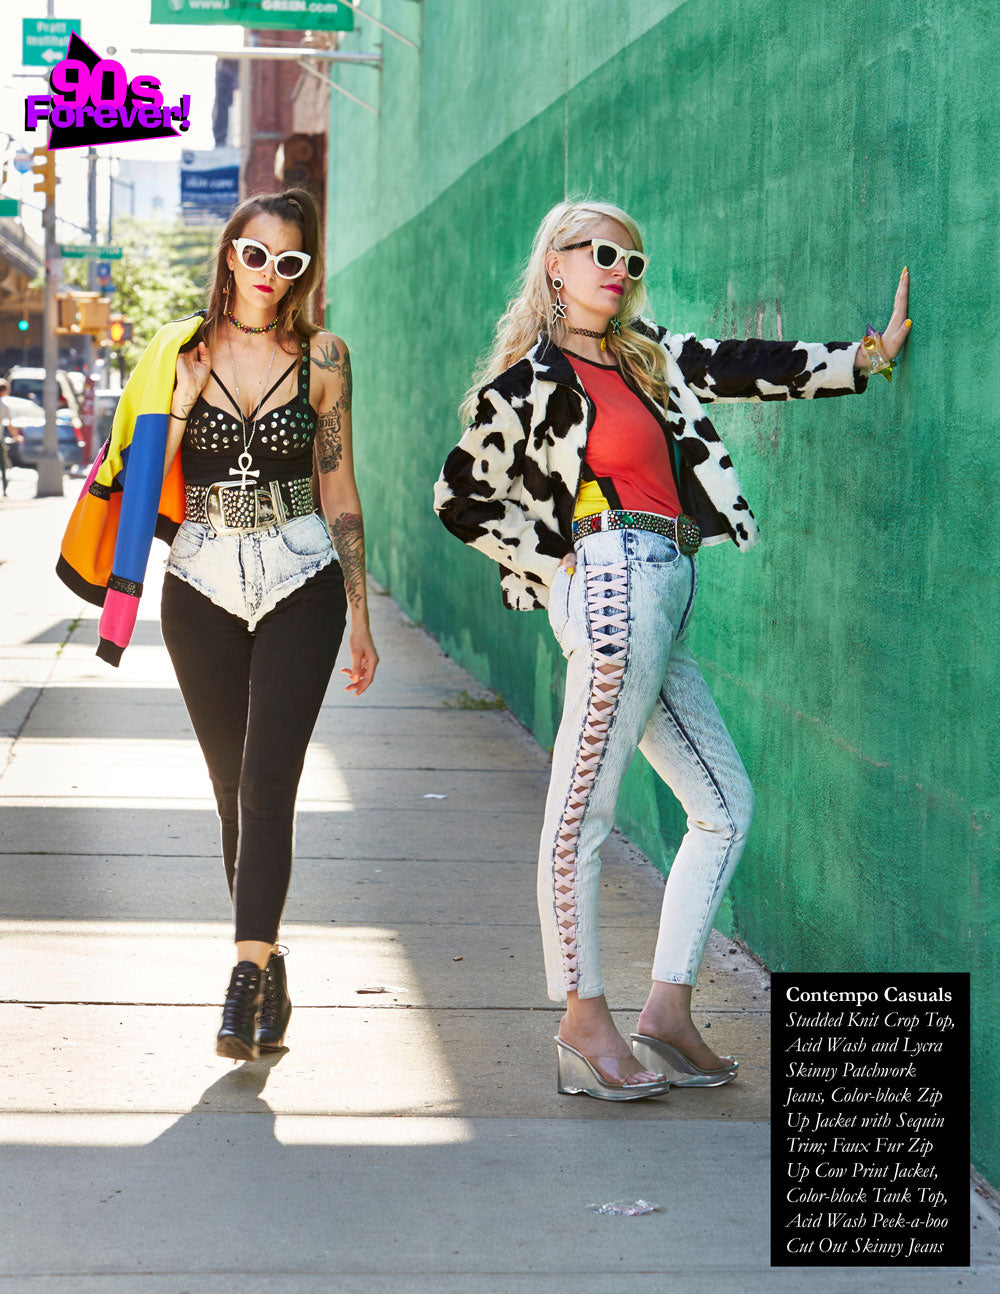 90s Forever Retro Vintage Fashion Apparel Lookbook - Contempo Casuals Studded Knit Crop Top, Acid Wash and Lycra Skinny Patchwork Jeans, Color-block Zip Up Jacket with Sequin Trim; Faux Fur Zip Up Cow Print Jacket, Color-block Tank Top, Acid Wash Peek-a-boo Cut Out Skinny Jeans